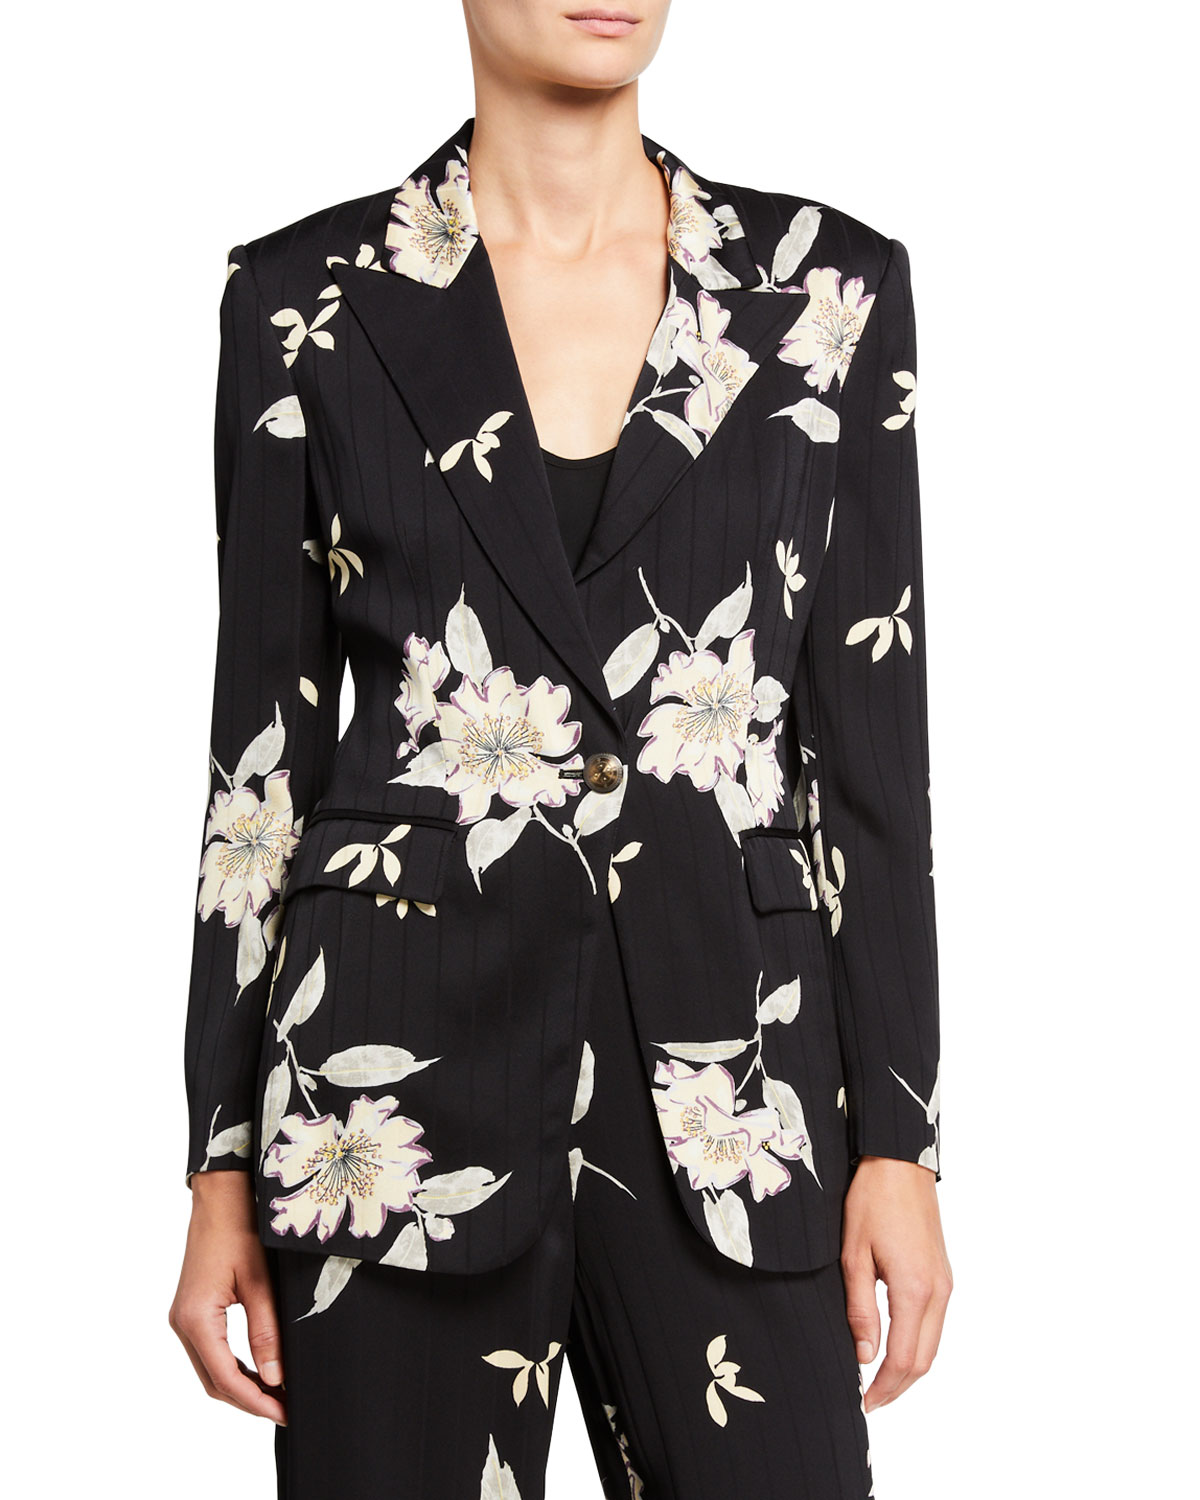 Etro Spaced Plumeria Floral Print Pinstriped Blazer